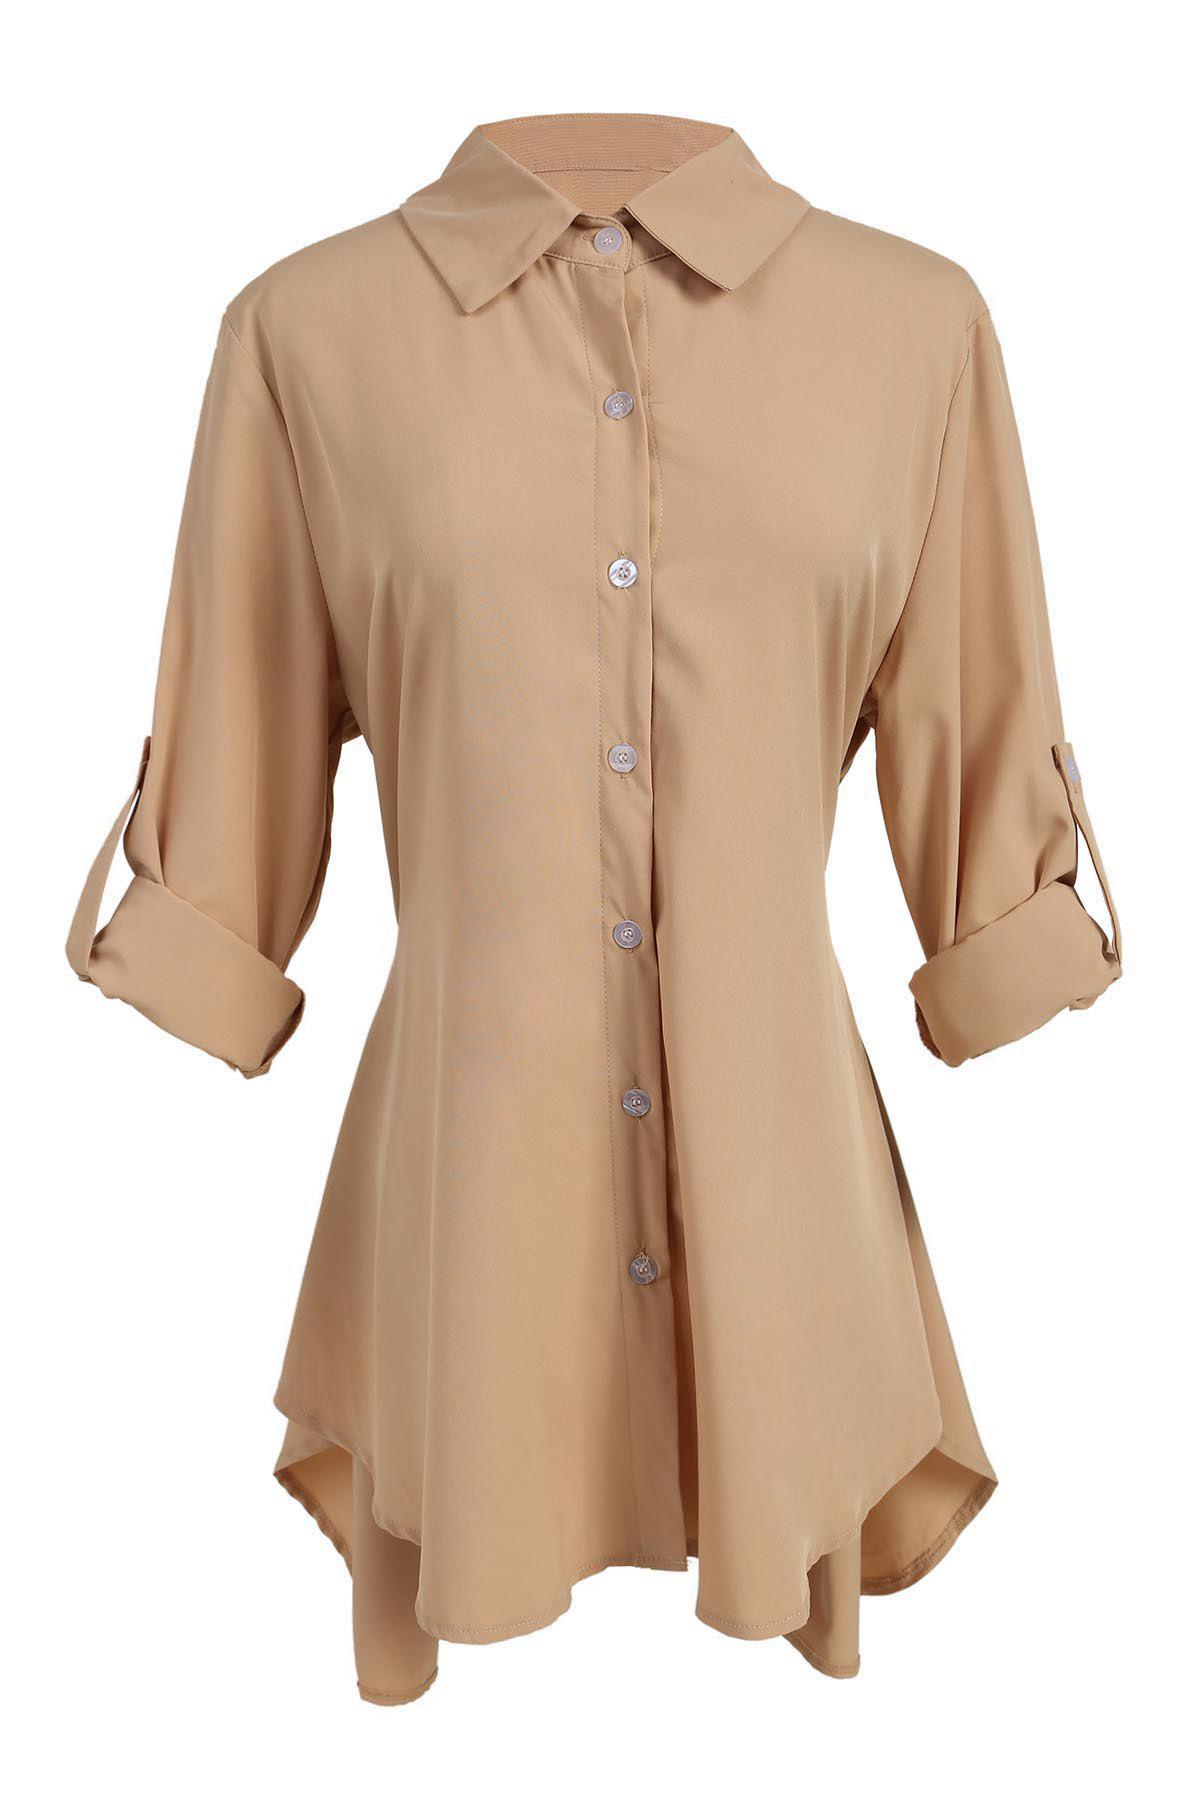 Chic Long Sleeve Shirt Collar Asymmetrical Solid Color Women's Dress - KHAKI XL